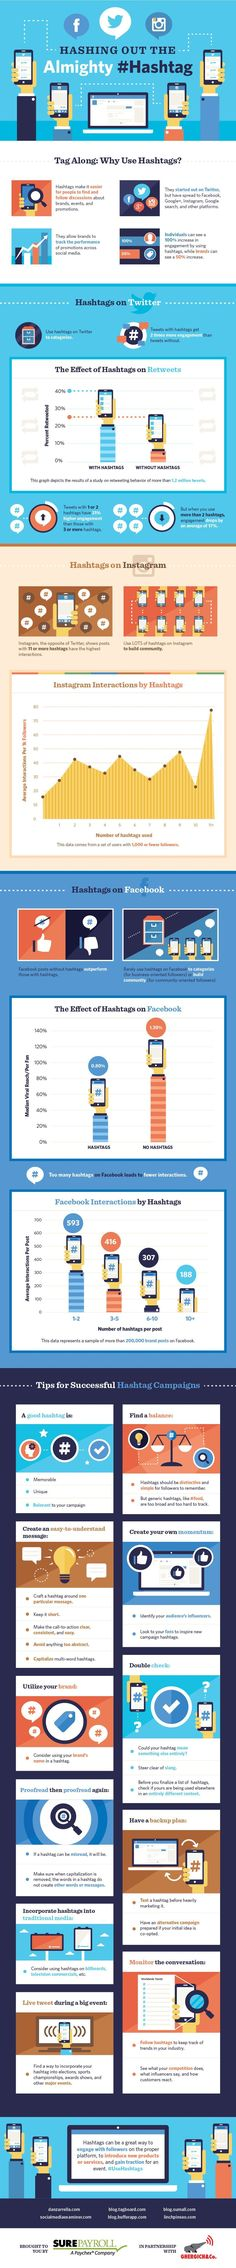 #SocialMedia marketing: how to use hashtags on Facebook, Twitter, and Instagram RefugeMarketing.com